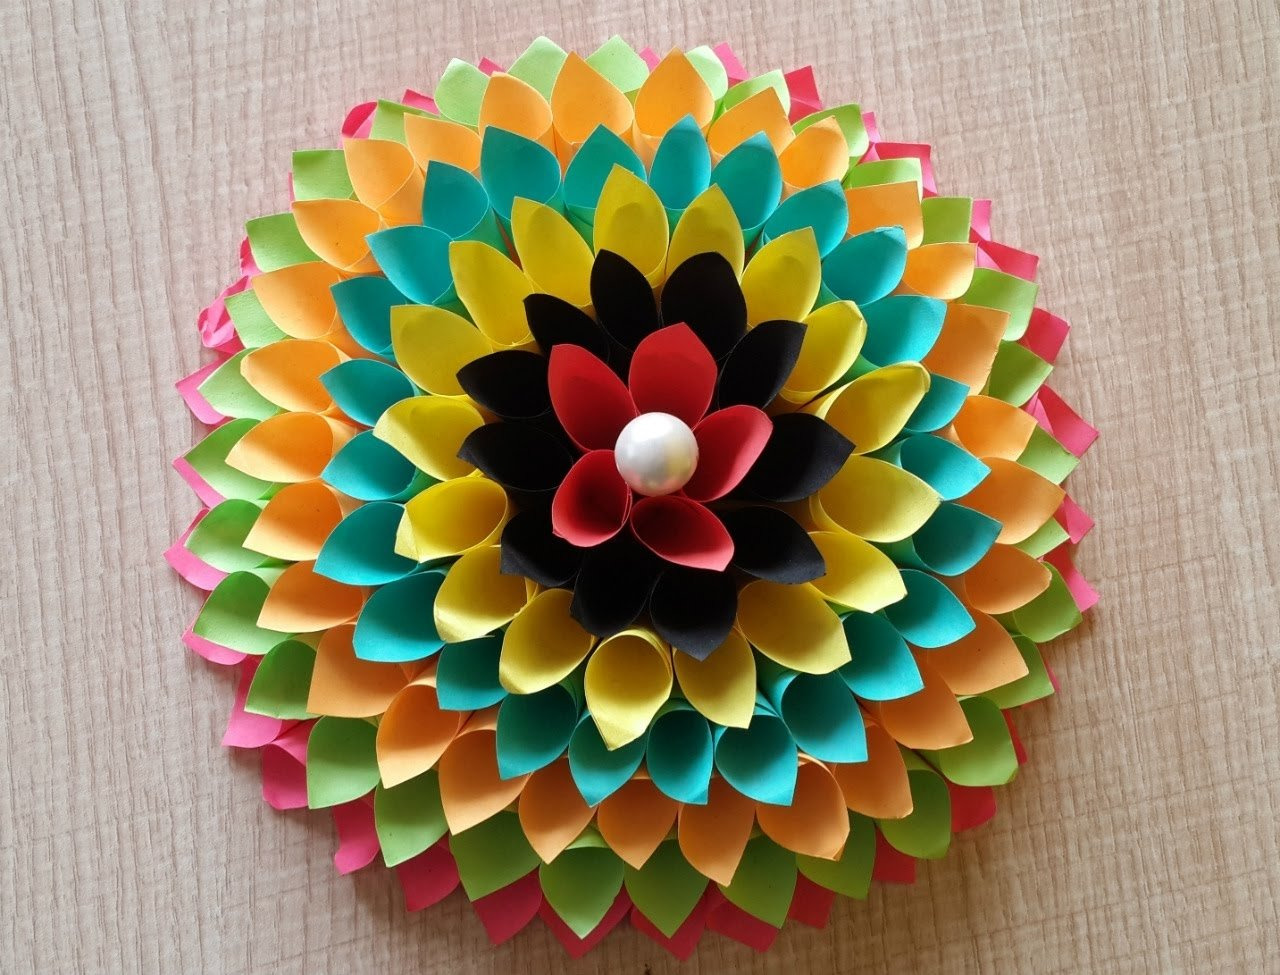 10 Pretty Easy Arts And Crafts Ideas 2021